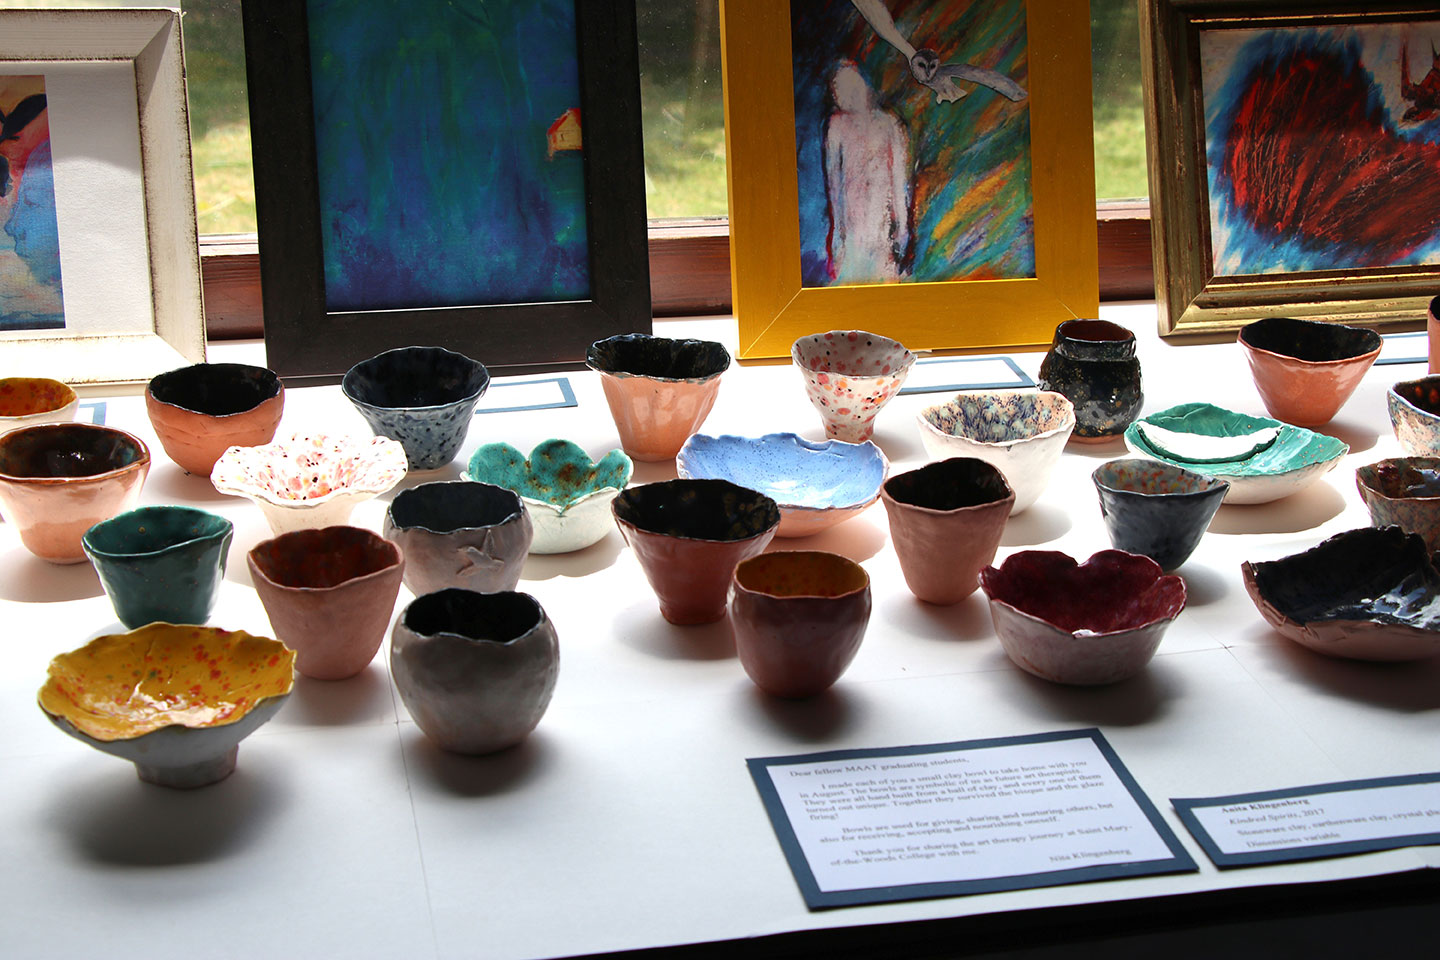 art exhibit with paintings and ceramic bowls